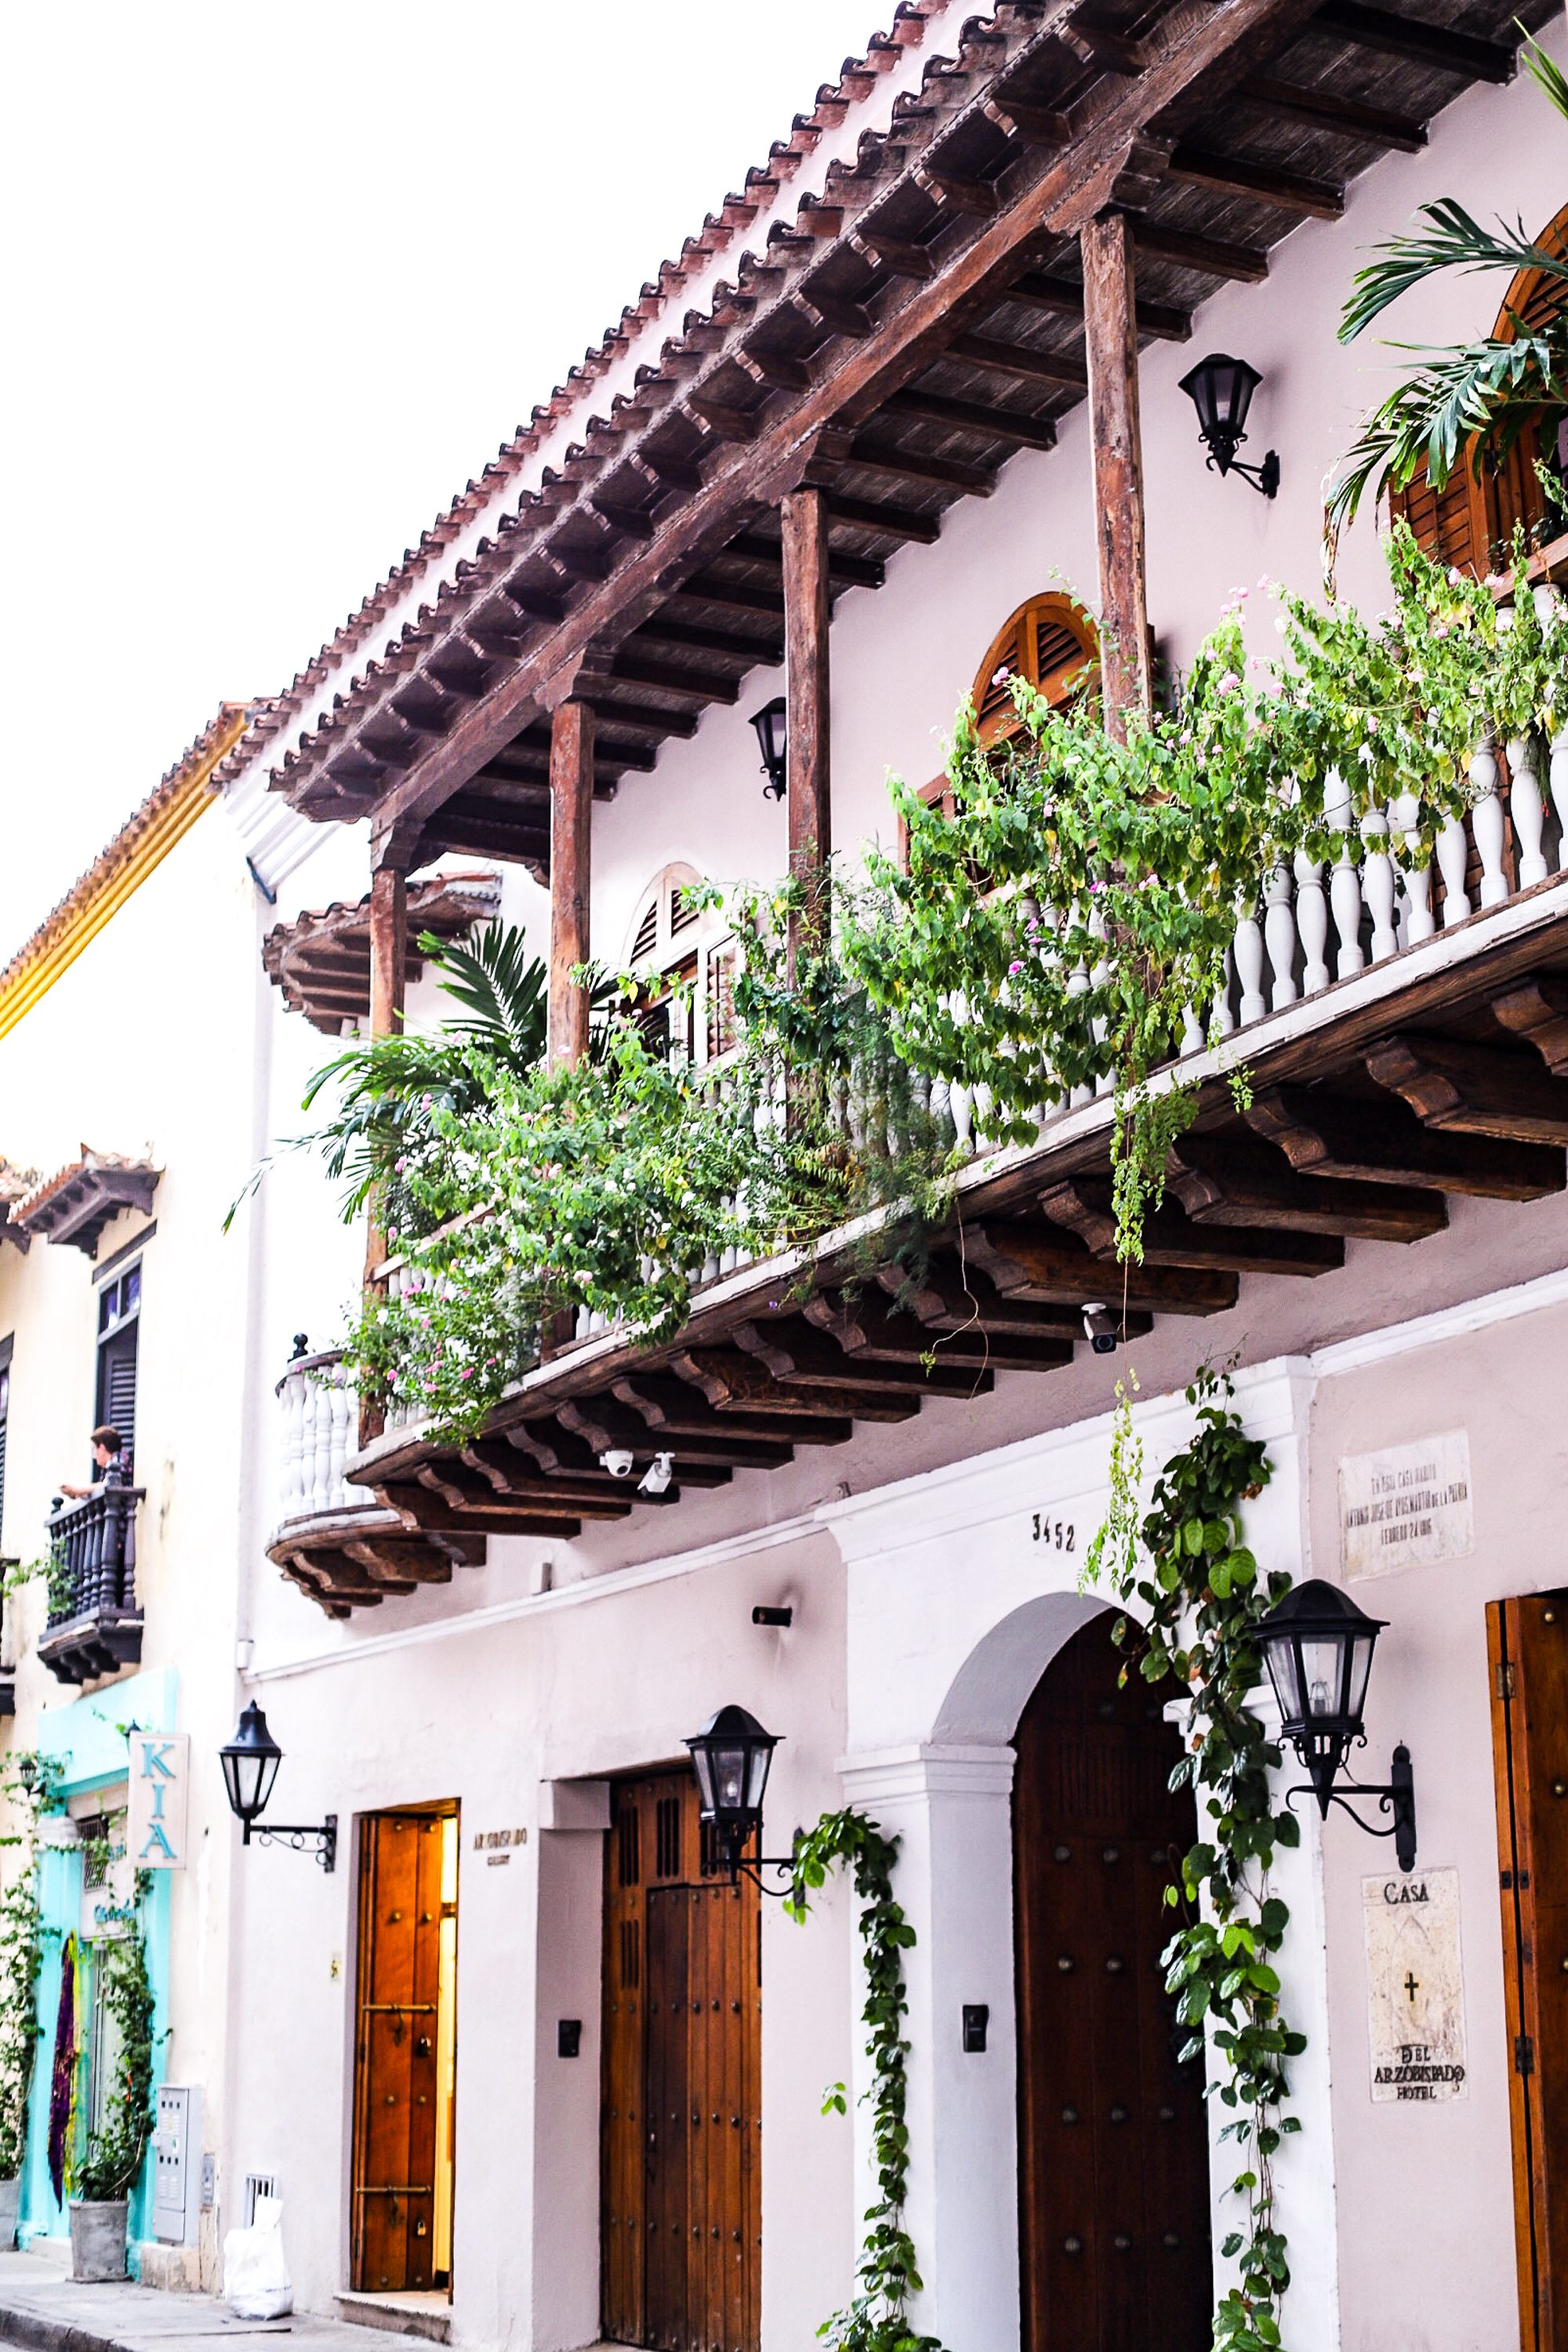 cartagena travel guide, what to do in cartagena, epoca cartagena, where to eat in cartagena, best bars in cartagena walled city, walled city cartagena, where to stay in cartagena, el baron cartagena, alquimico cartagena, bohemia cartagena